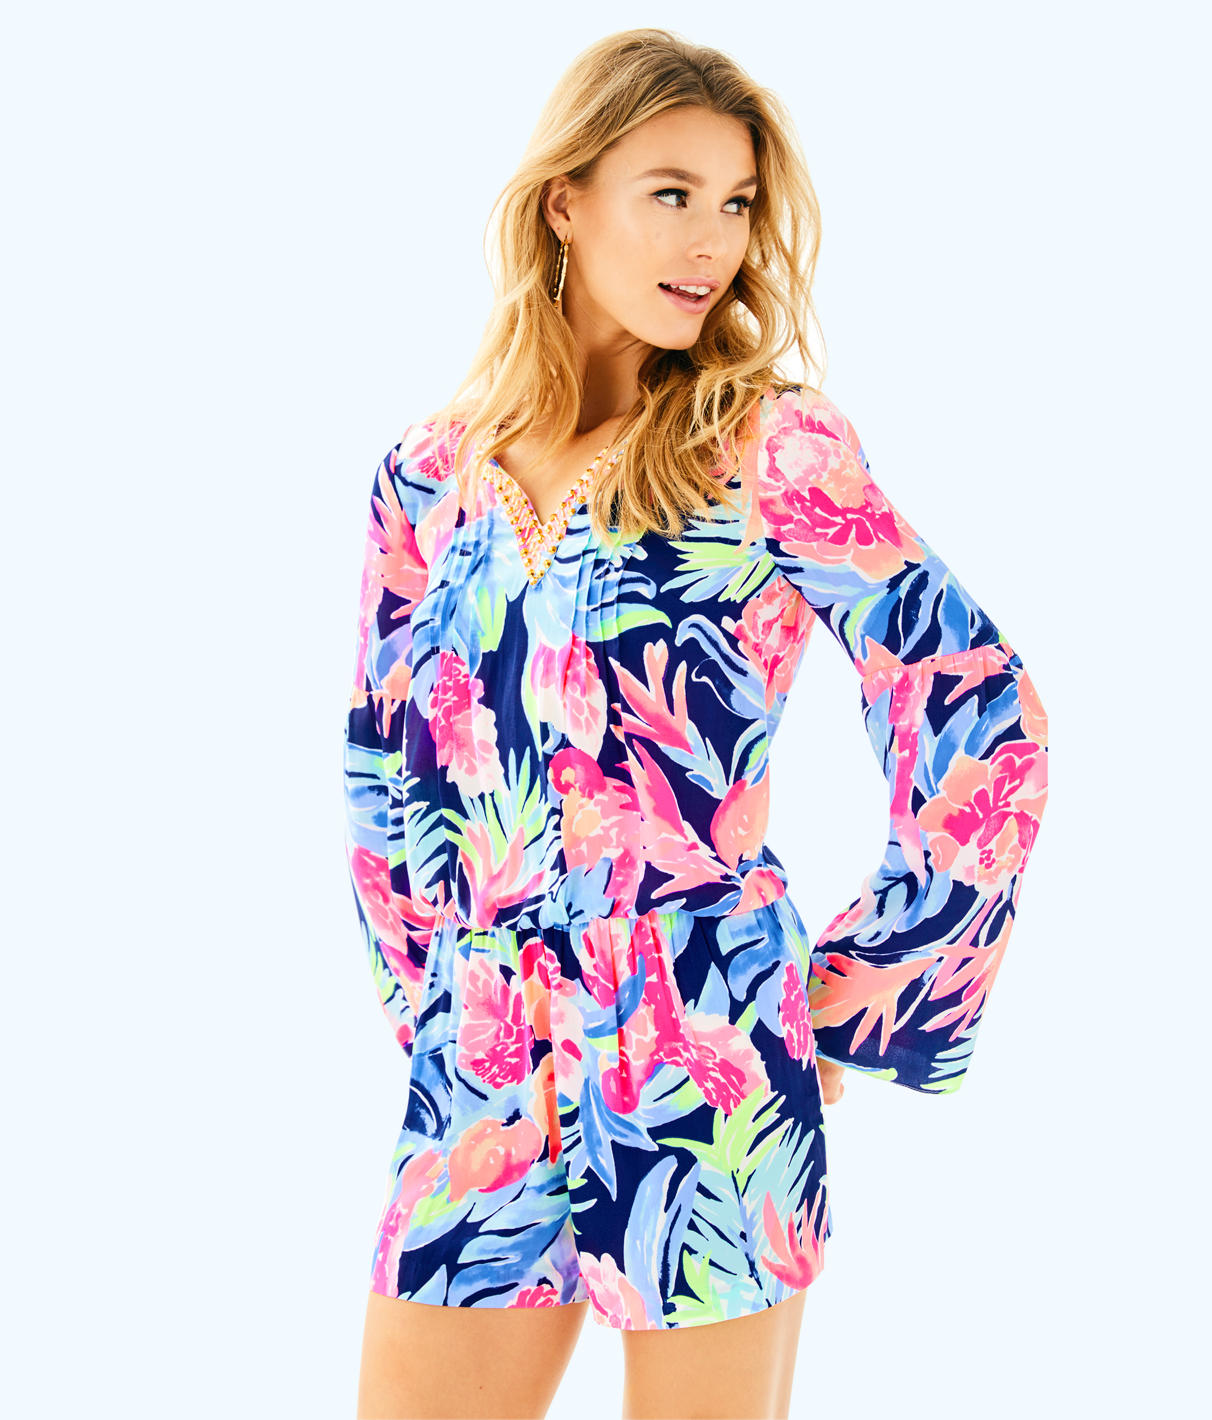 Lilly Pulitzer Lilly Pulitzer Womens Ariele Romper